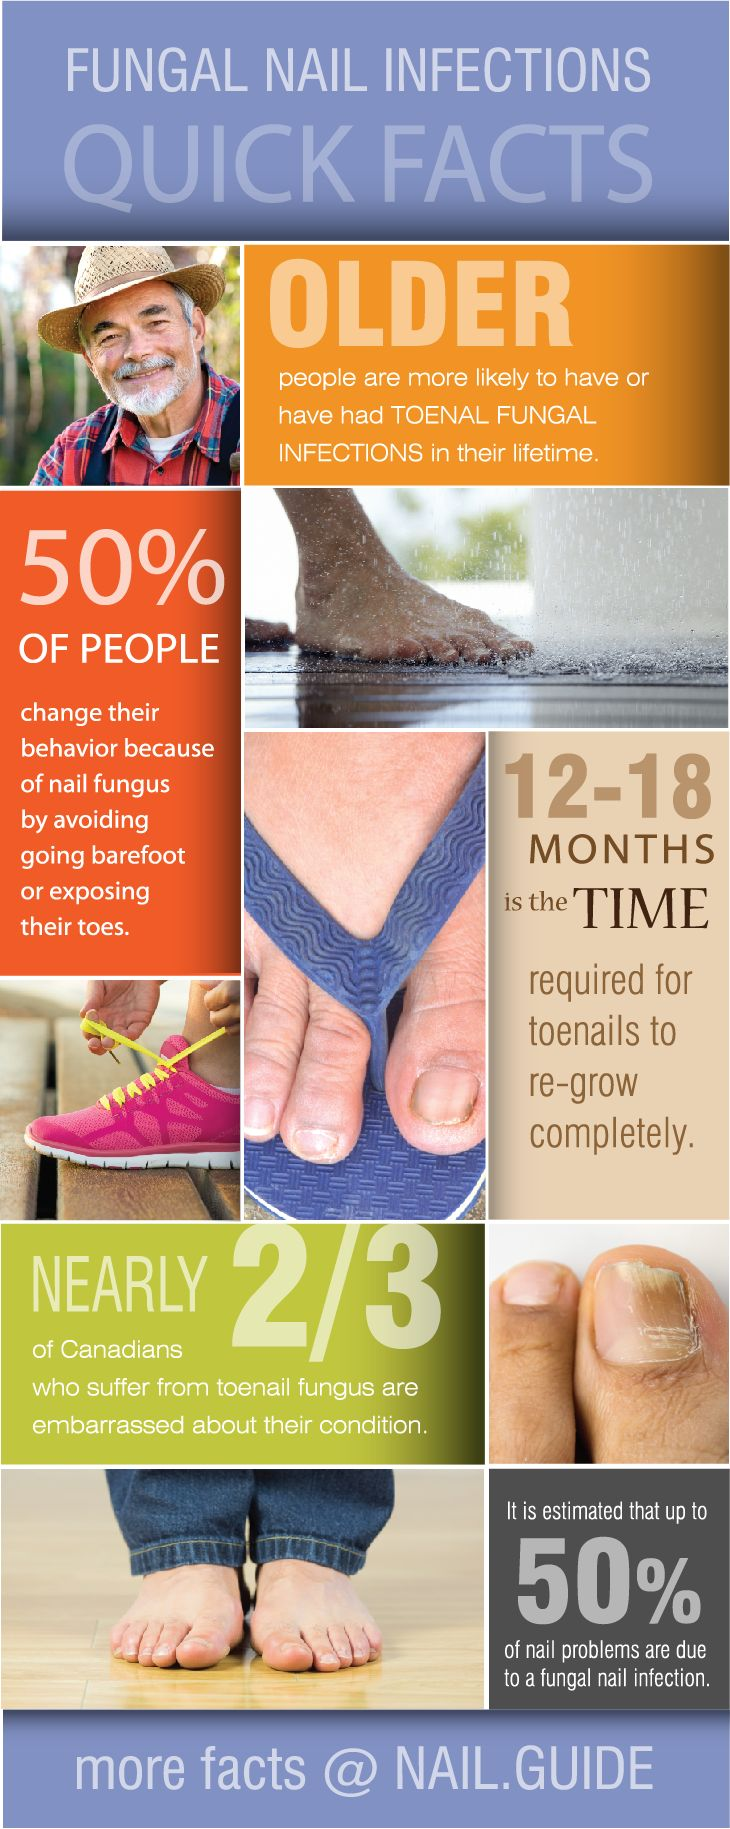 Facts about Fungal Nail Infections